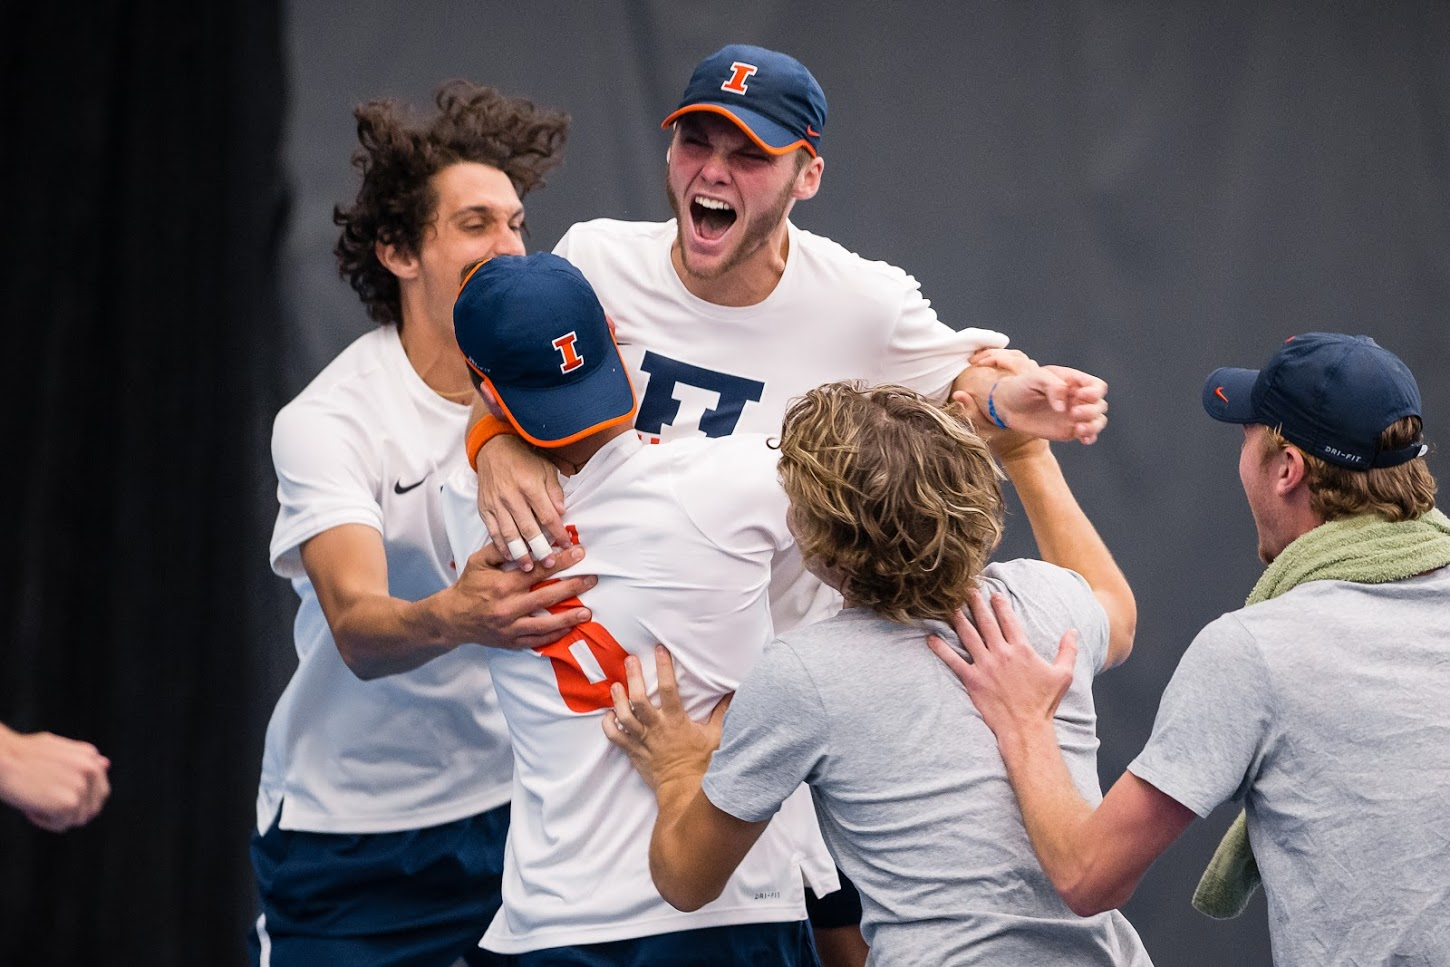 Illinois' Zeke Clark celebrates with his team after winning his singles match to end of the match against Penn State at Atkins Tennis Center on Friday, April 12, 2019. The Illini won 4-3.